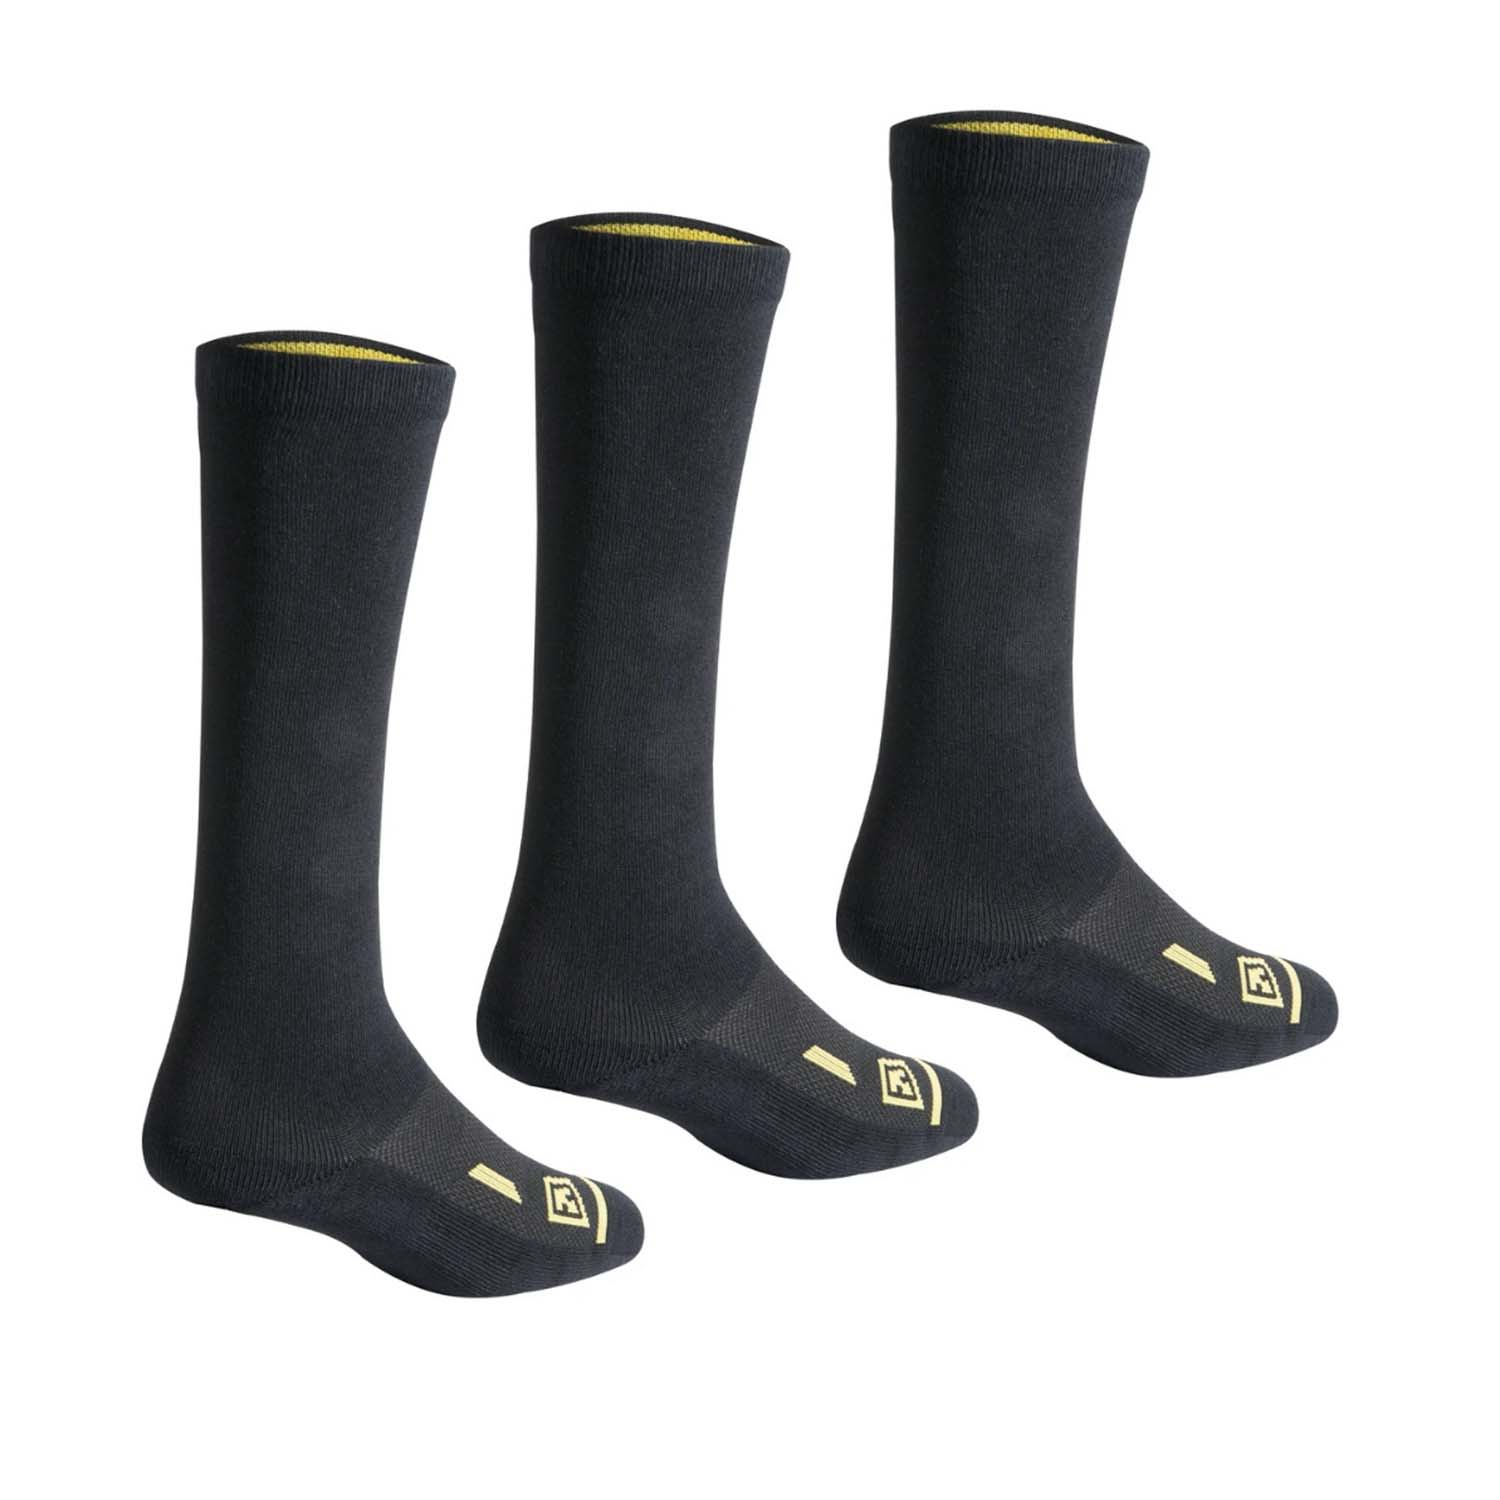 "First Tactical 9"" Cotton Duty Socks (3-Pack)"